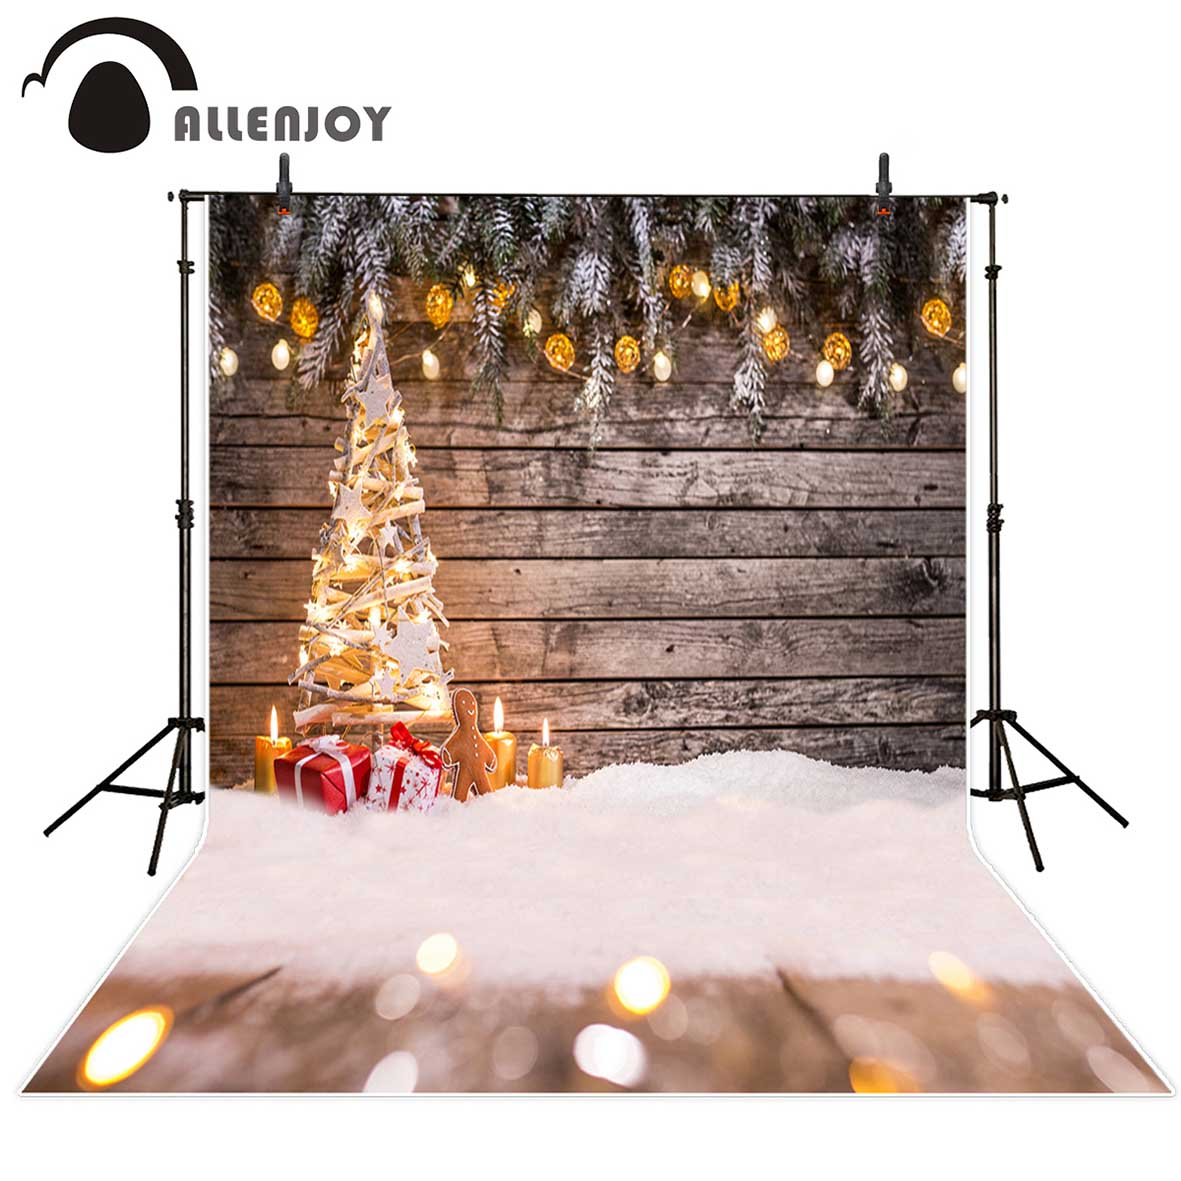 Allenjoy backgrounds for photo studio Christmas snow shiny tree bokeh backdrop photobooth computer printing vinyl